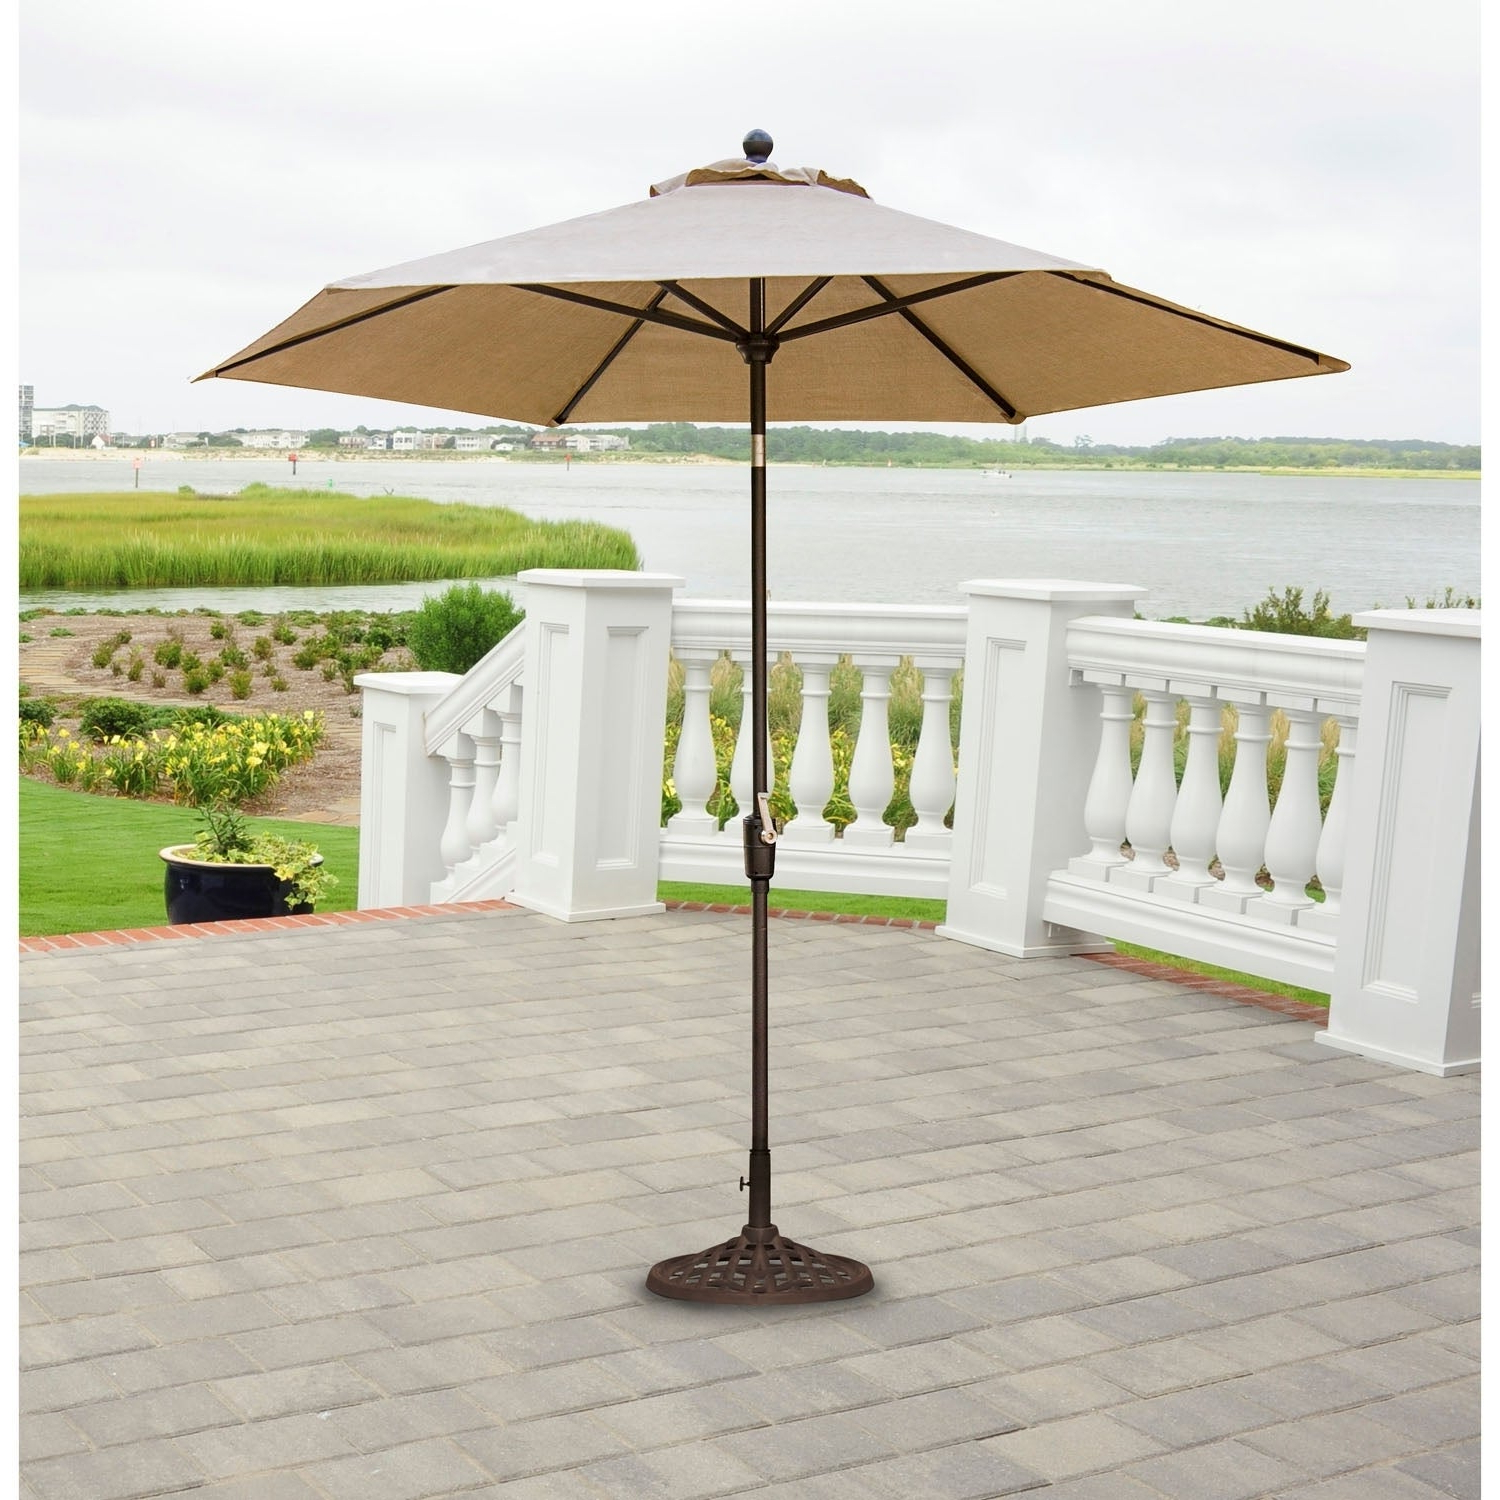 2020 Hanover Outdoor Tradumb 11 Traditions 11 Foot Market Umbrella Inside Julian Market Sunbrella Umbrellas (View 11 of 20)